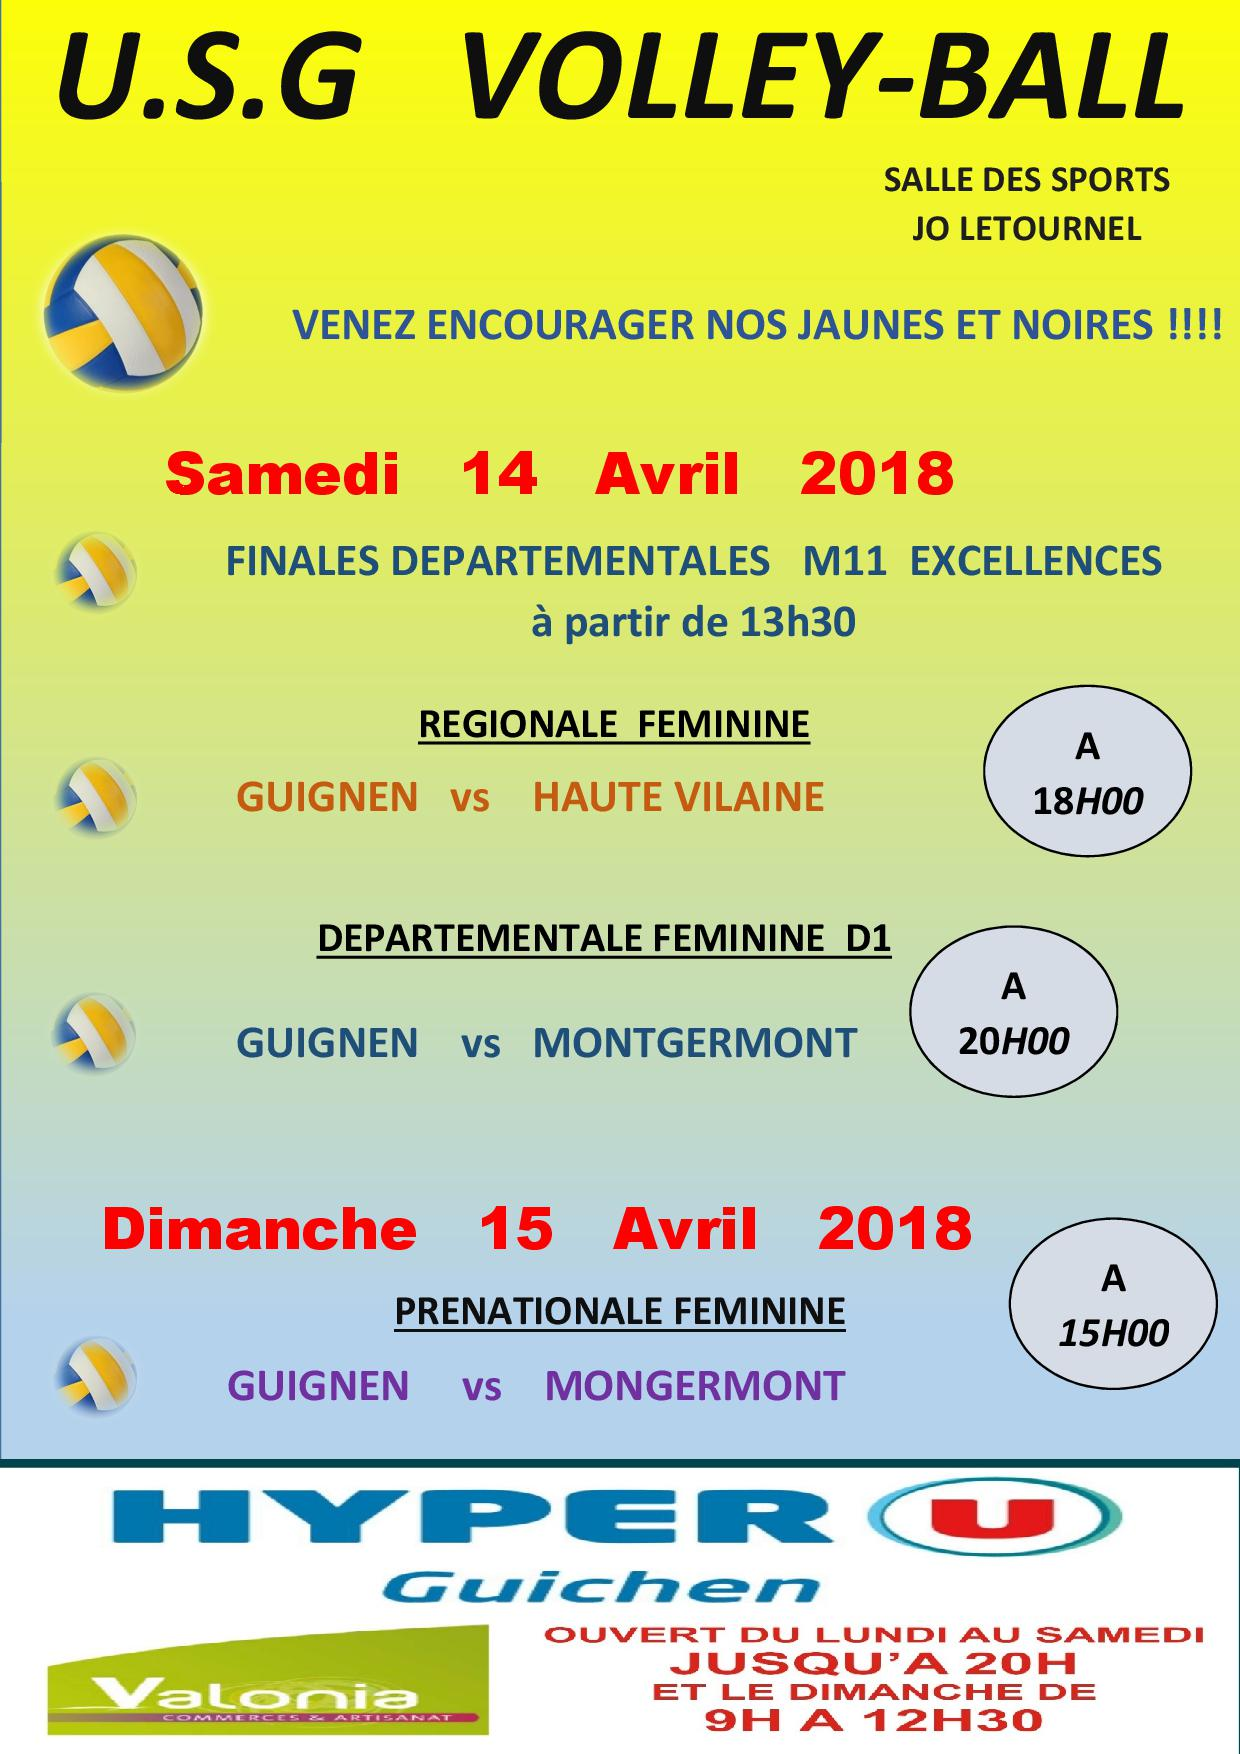 AFFICHE VOLLEY du 14 AVRIL 2018.jpg